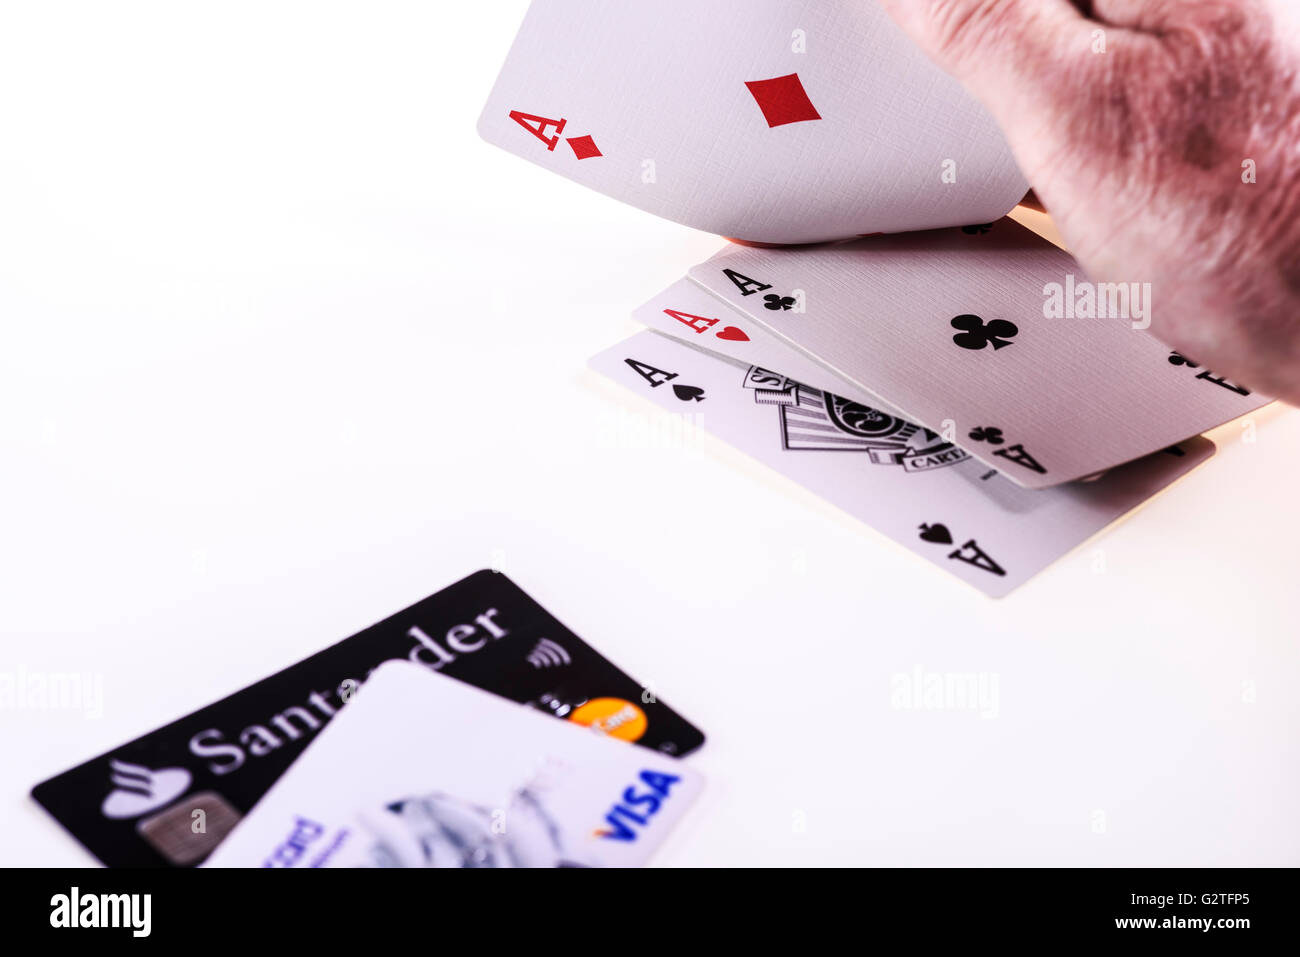 Gambling with credit cards. - Stock Image